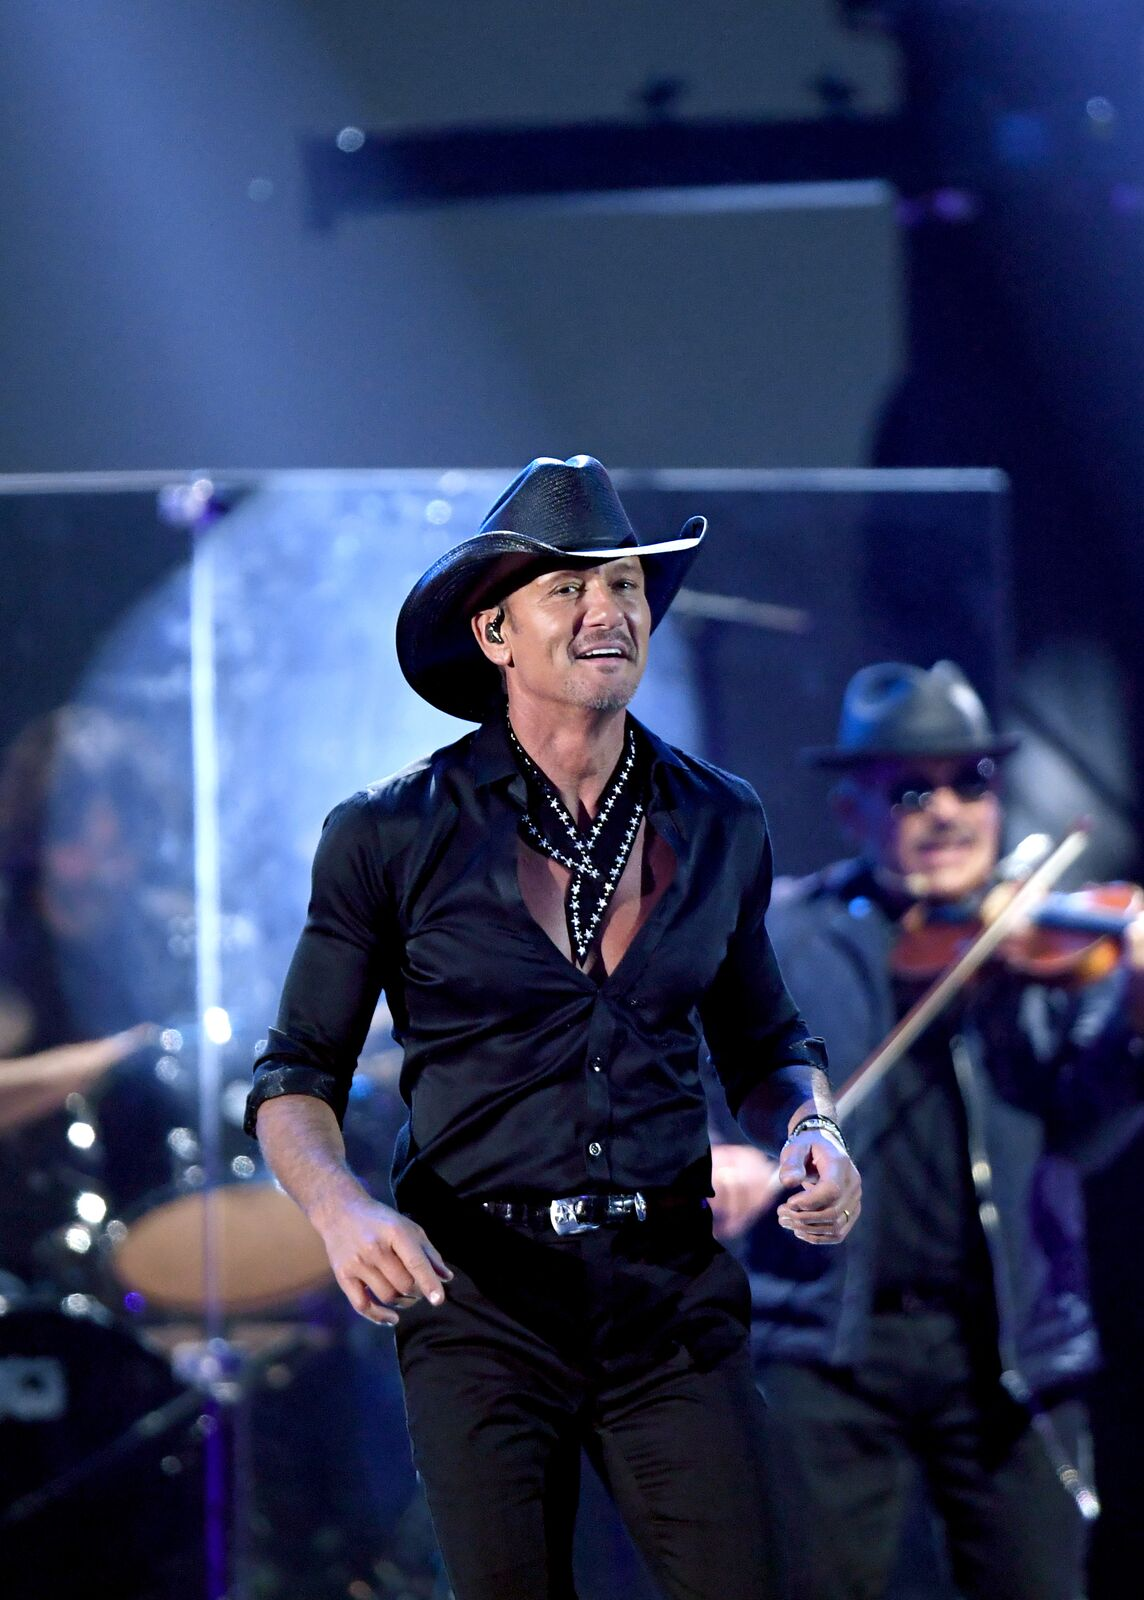 Tim McGraw onstage during the iHeartRadio Music Festival on September 20, 2019 | Photo: Getty Images